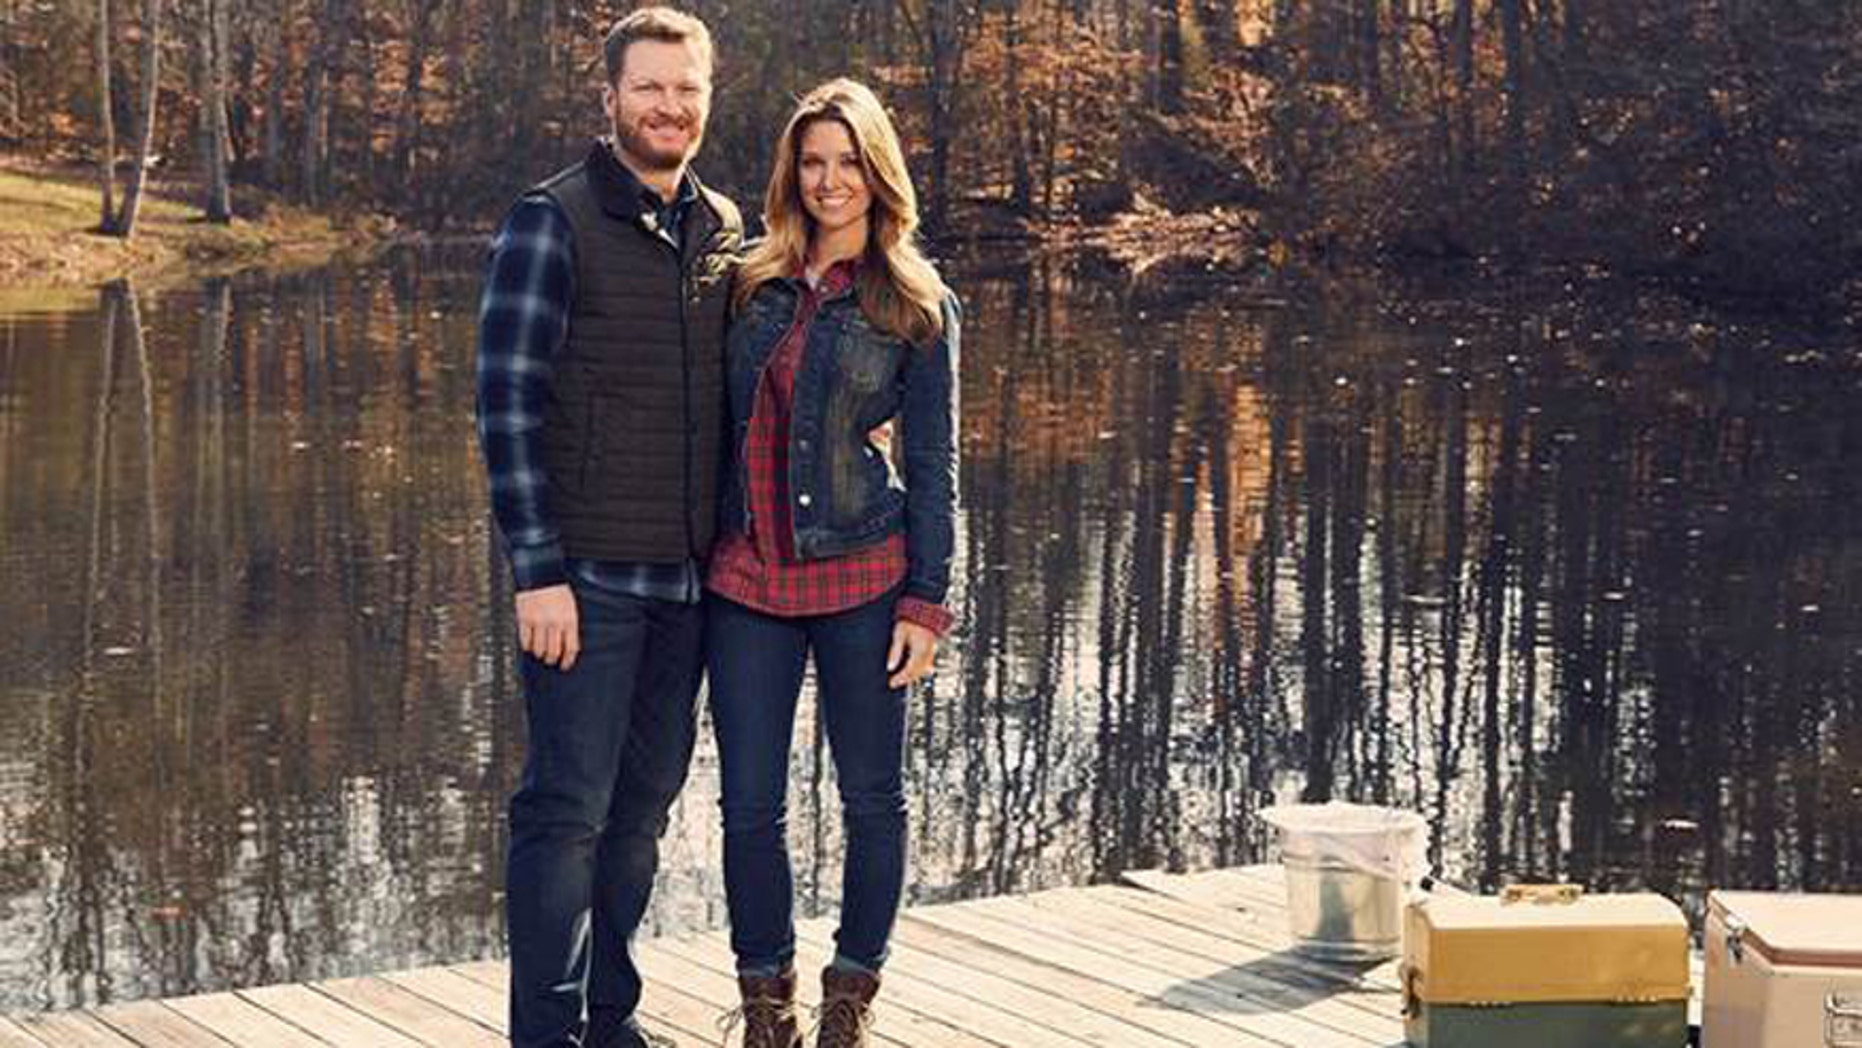 Dale Earnhardt Jr. and his wife Amy.